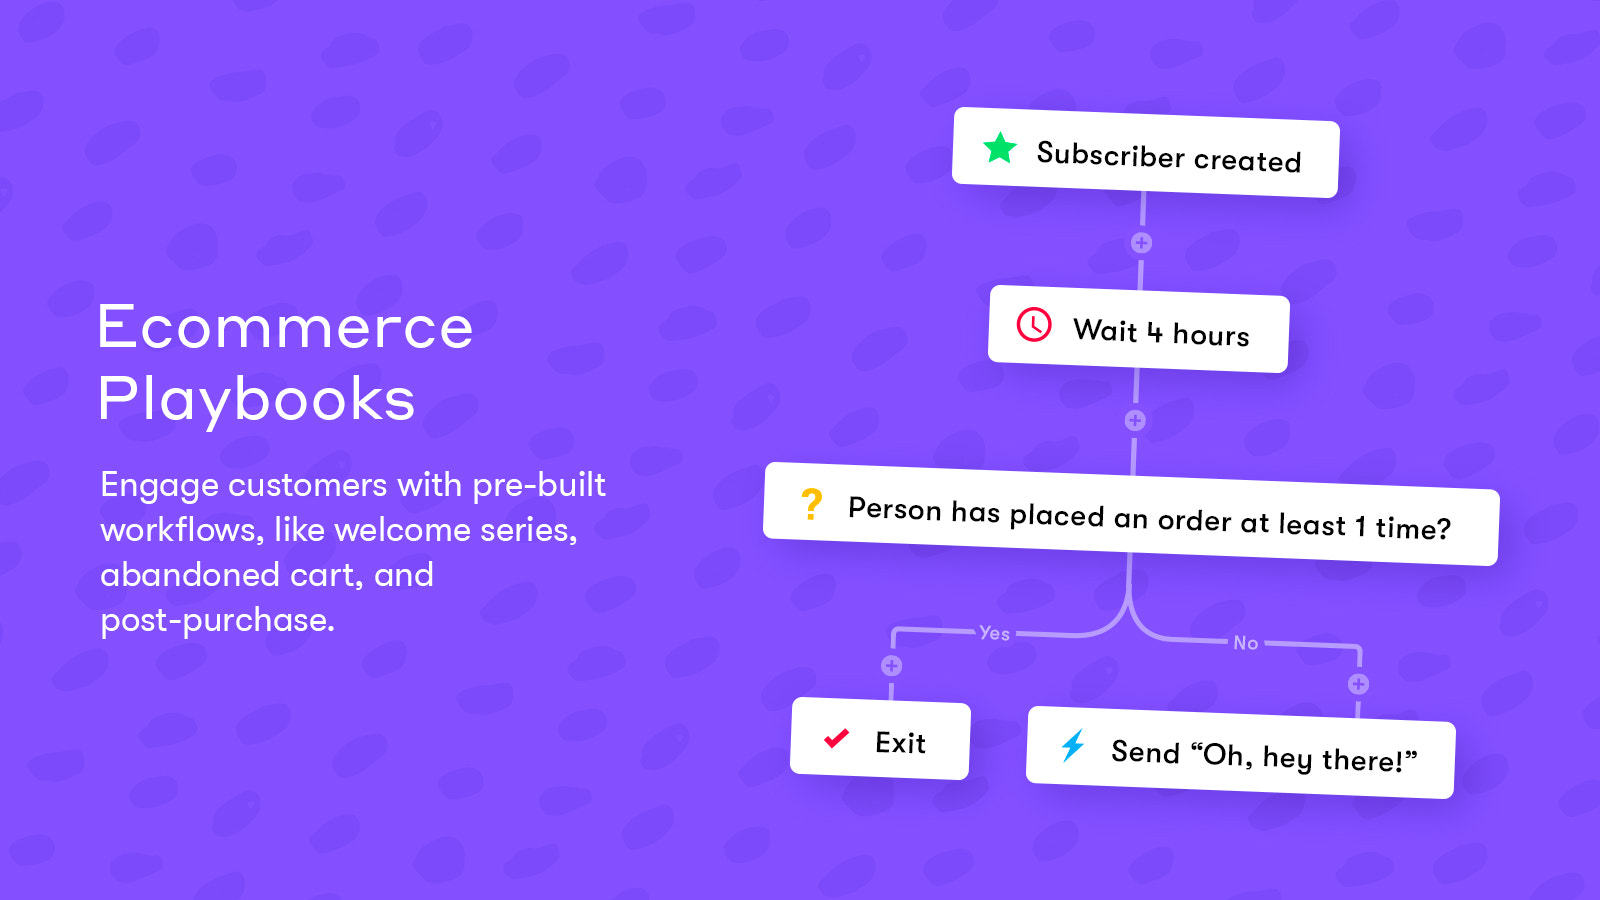 Use ecommerce playbooks designed to drive more revenue